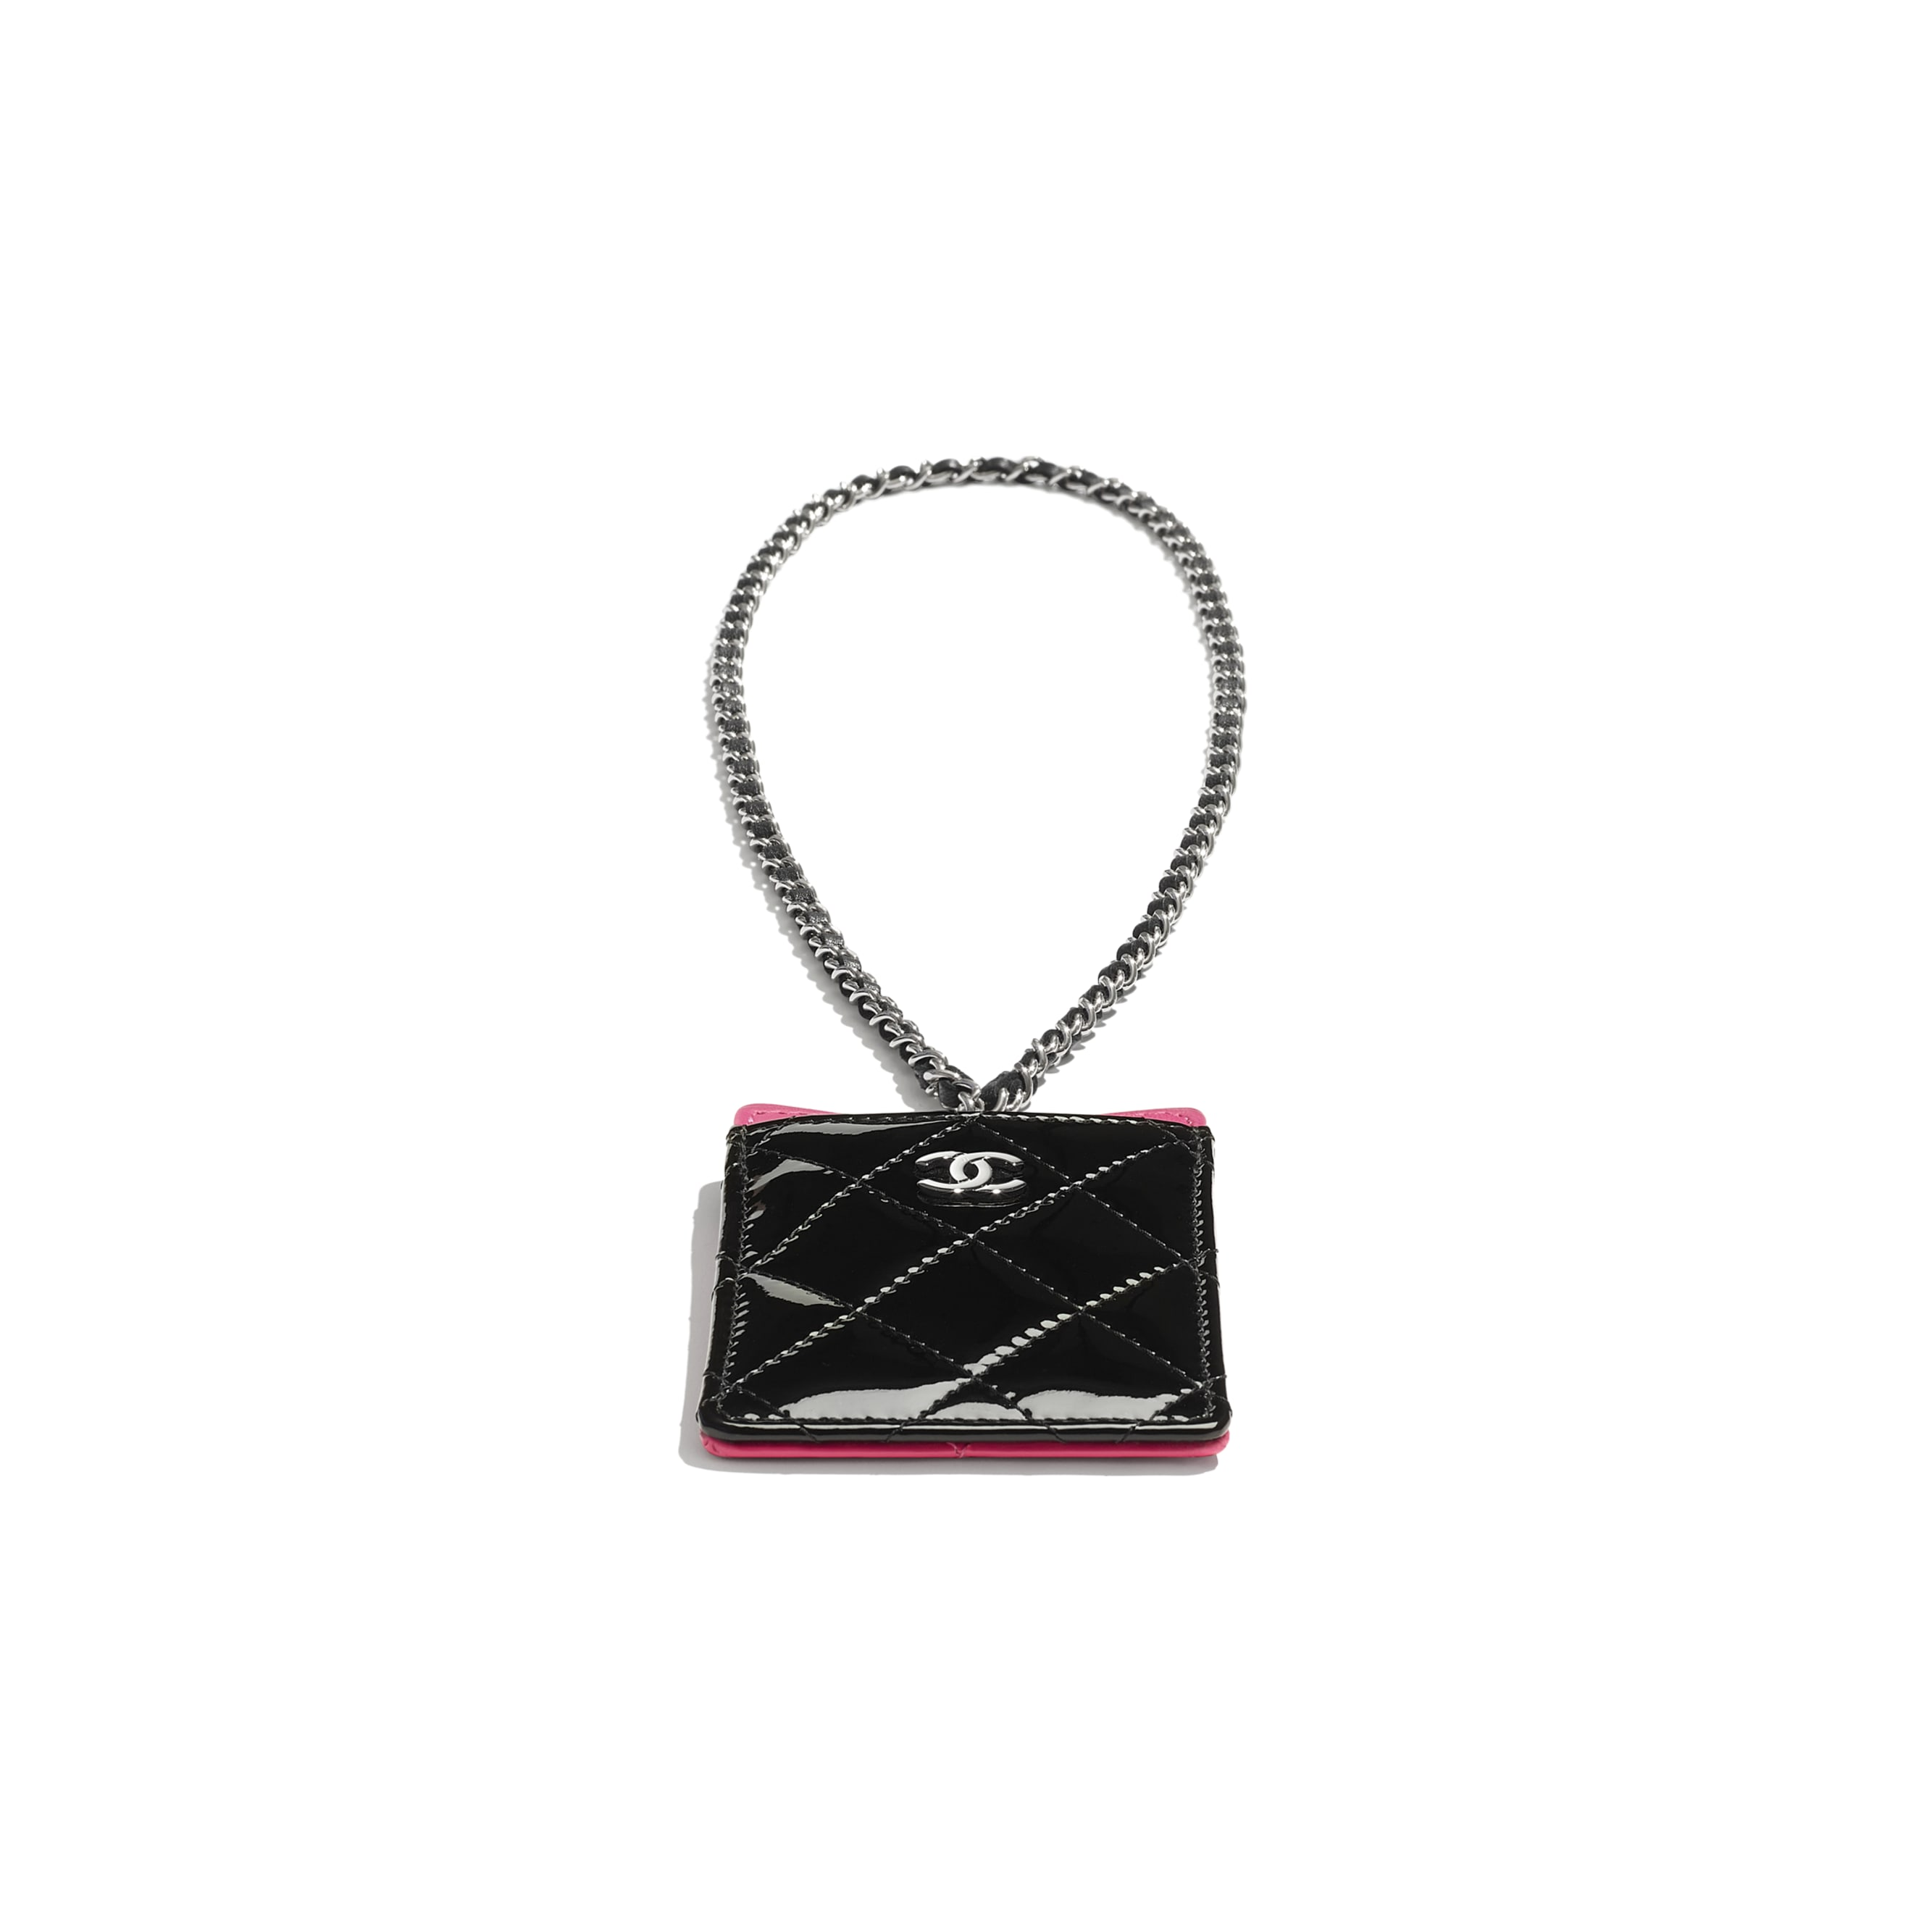 Classic Card Holder with Chain - Pink & Black - Patent Calfskin & Silver-Tone Metal - CHANEL - Extra view - see standard sized version